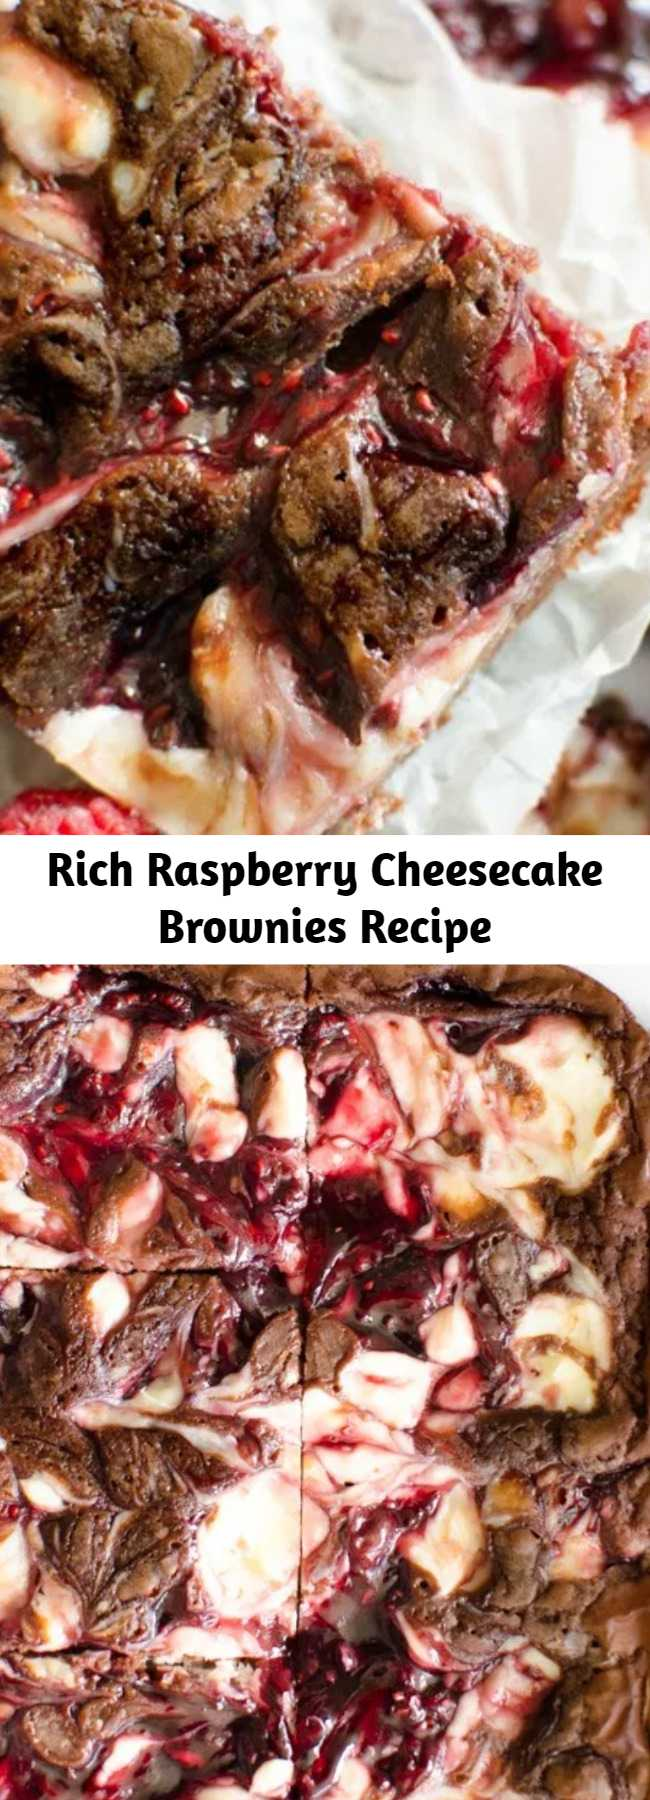 Rich Raspberry Cheesecake Brownies Recipe - Raspberry Cheesecake Brownies are decedent 5 ingredient brownies with a raspberry cheesecake swirl. Quick & easy raspberry cheesecake brownie recipe that looks and tastes incredible!